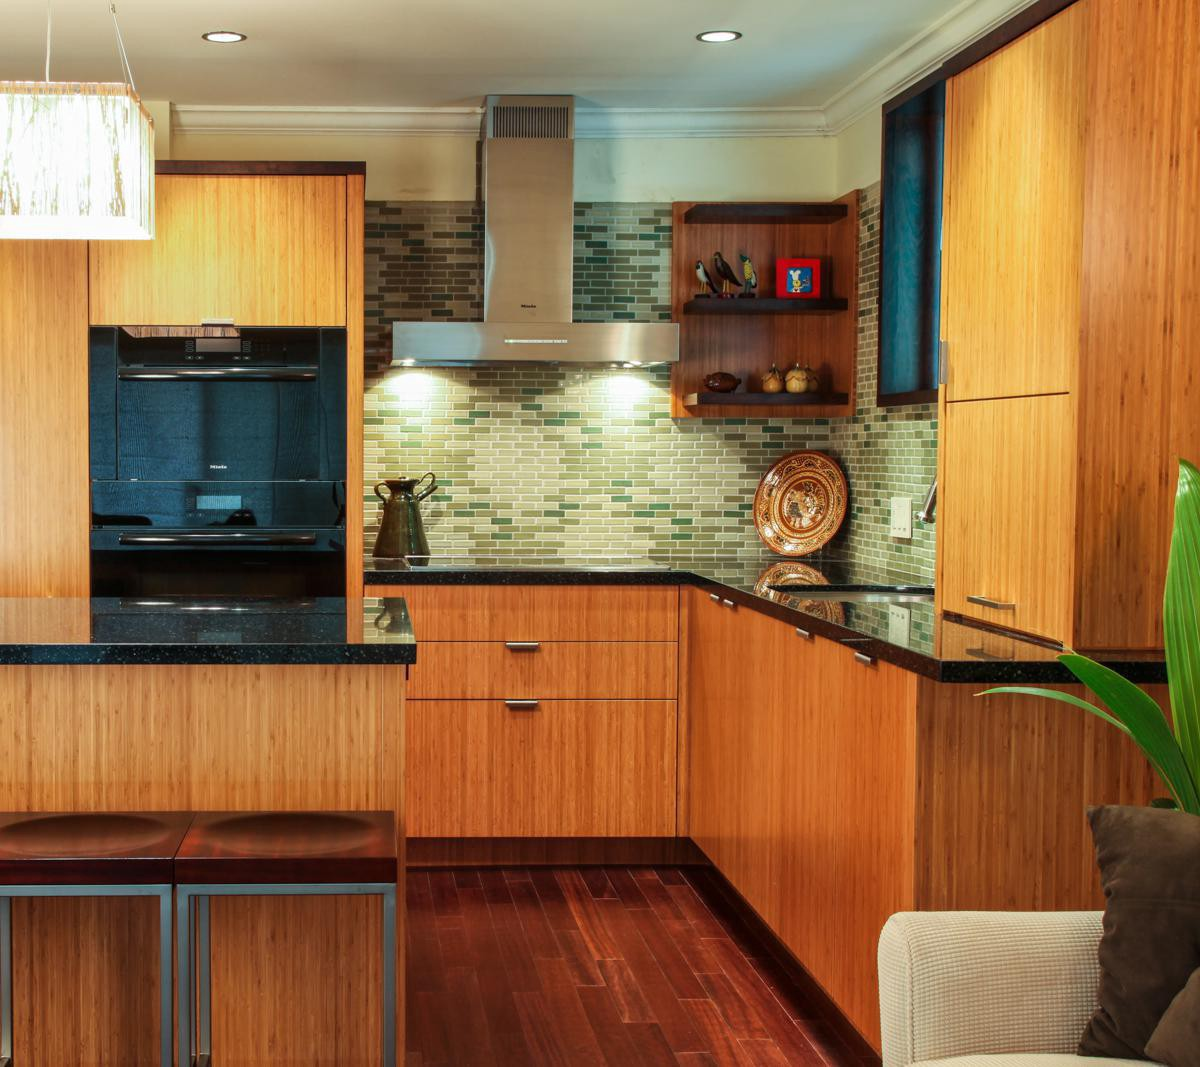 Remodel Your Kitchen With Eco-Friendly RTA Kitchen Cabinets